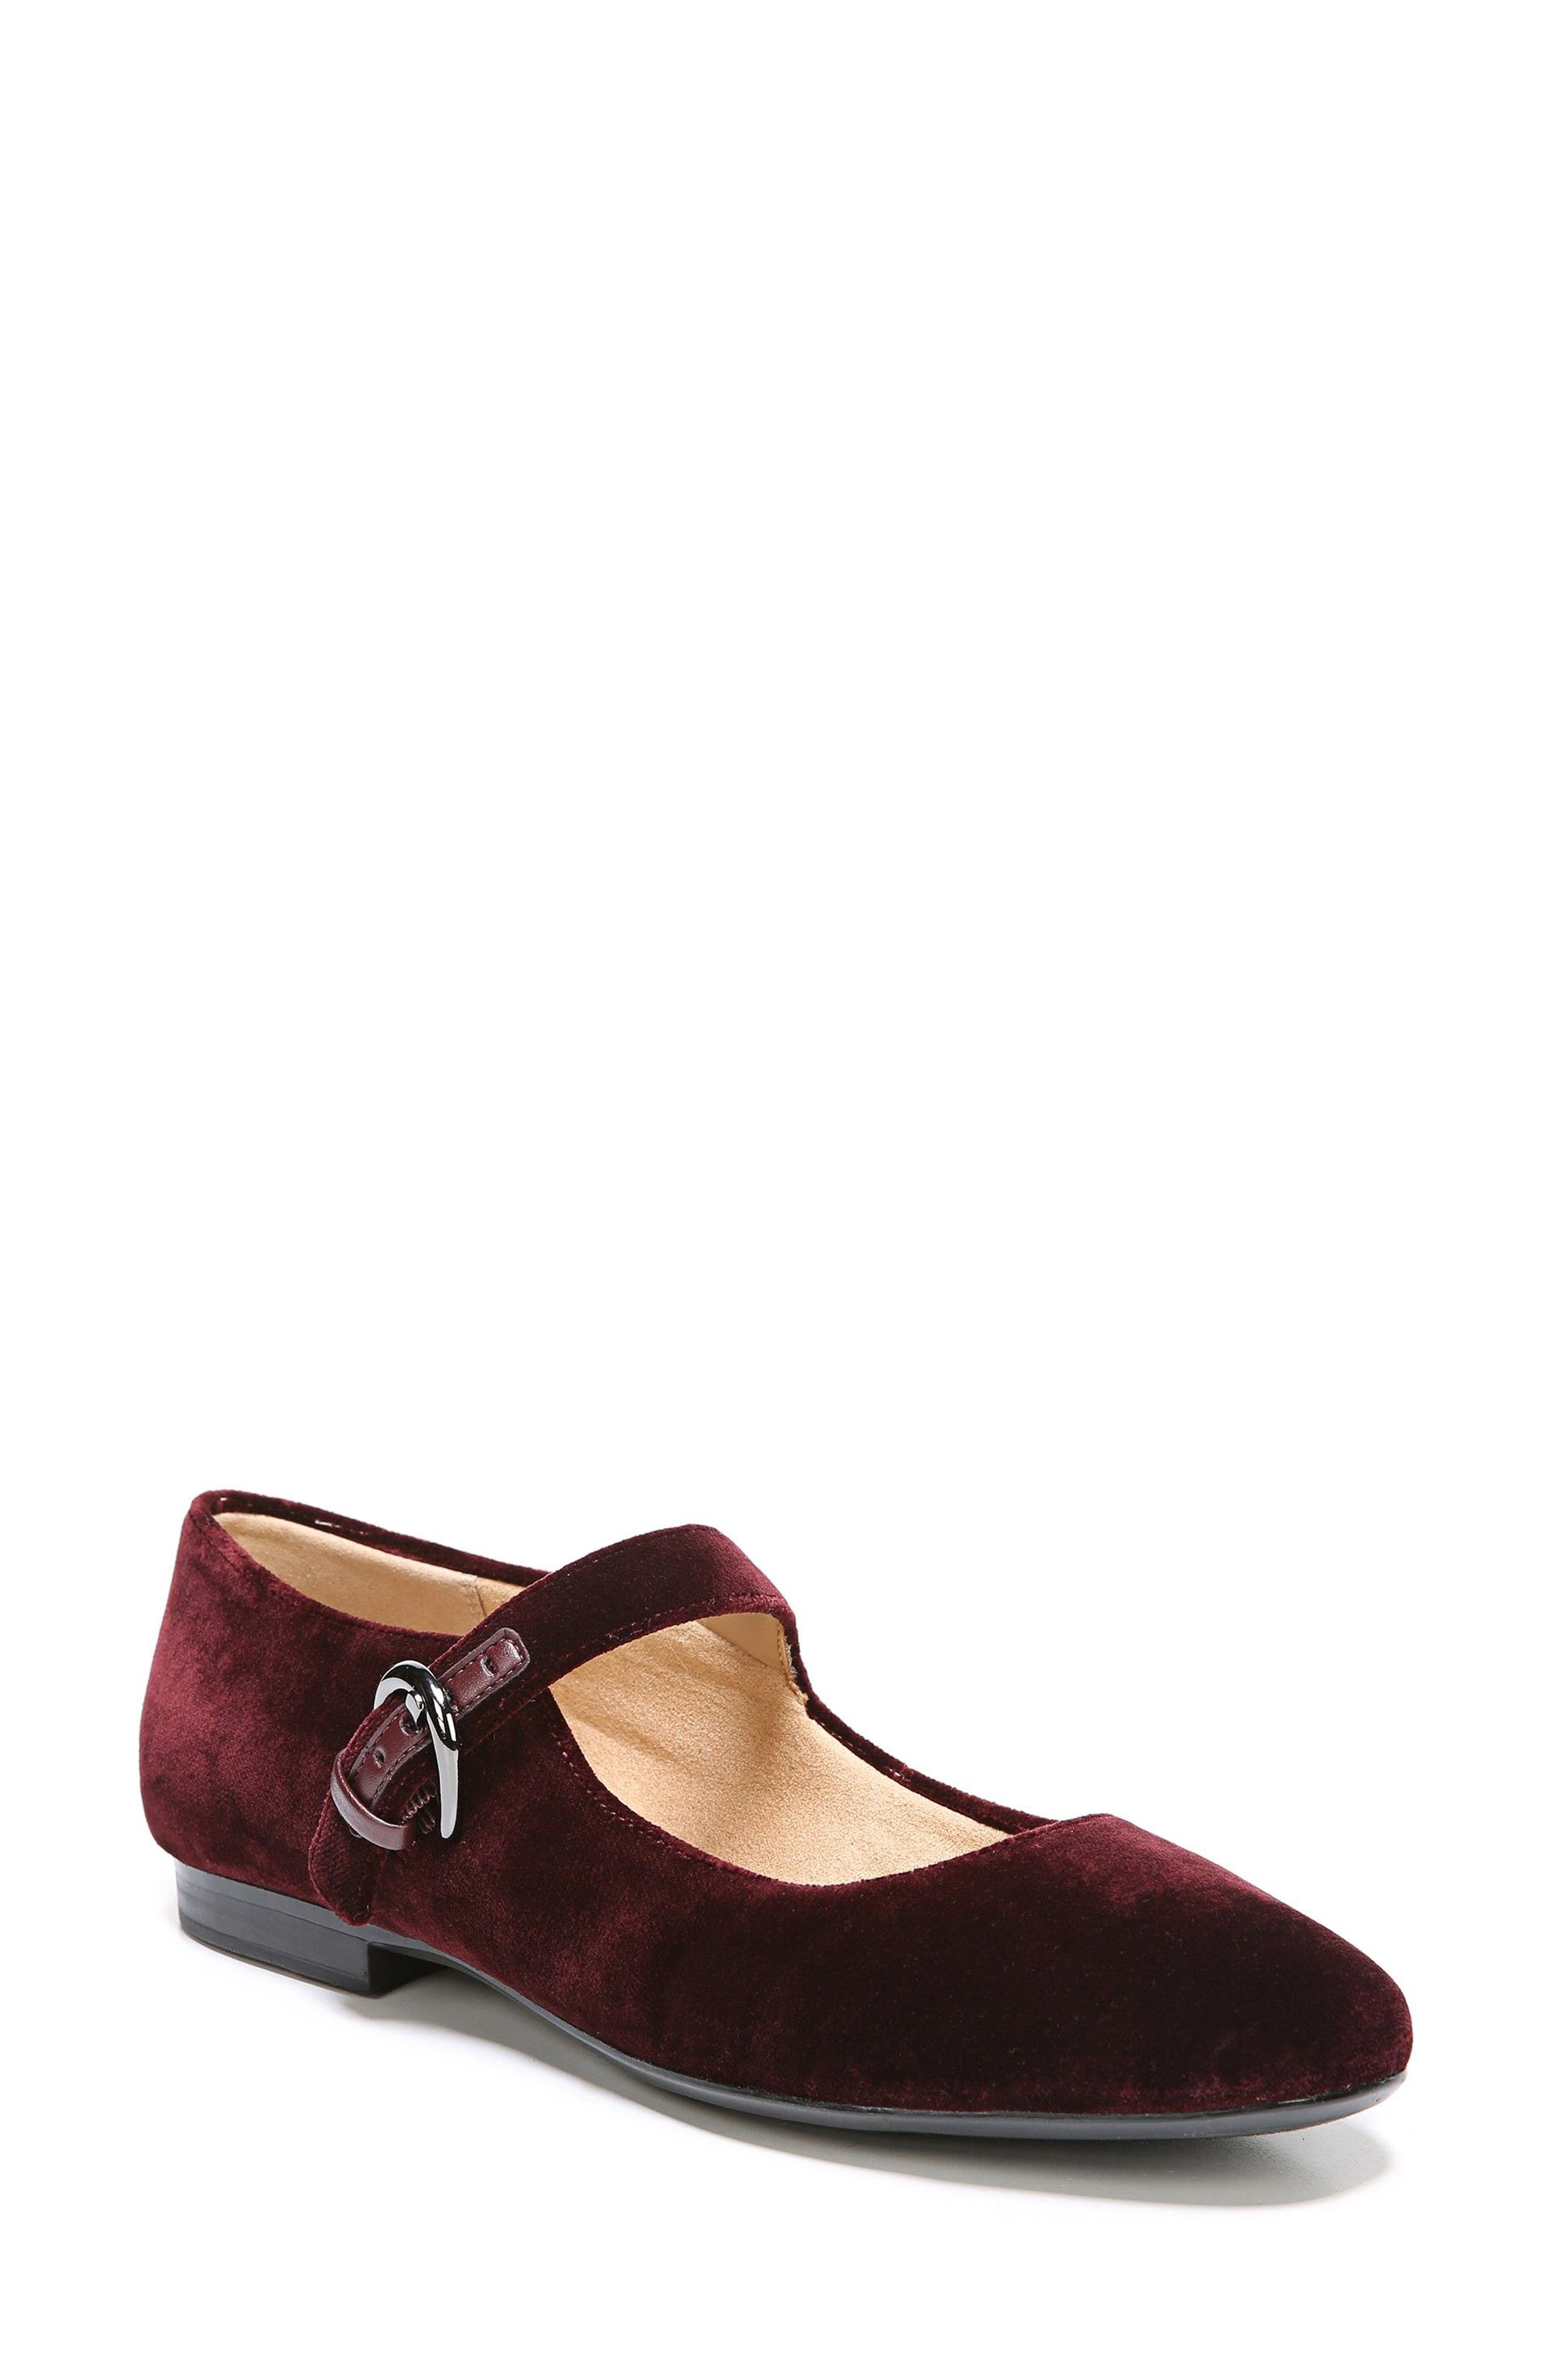 Naturalizer Erica Mary Jane Flat (Women)